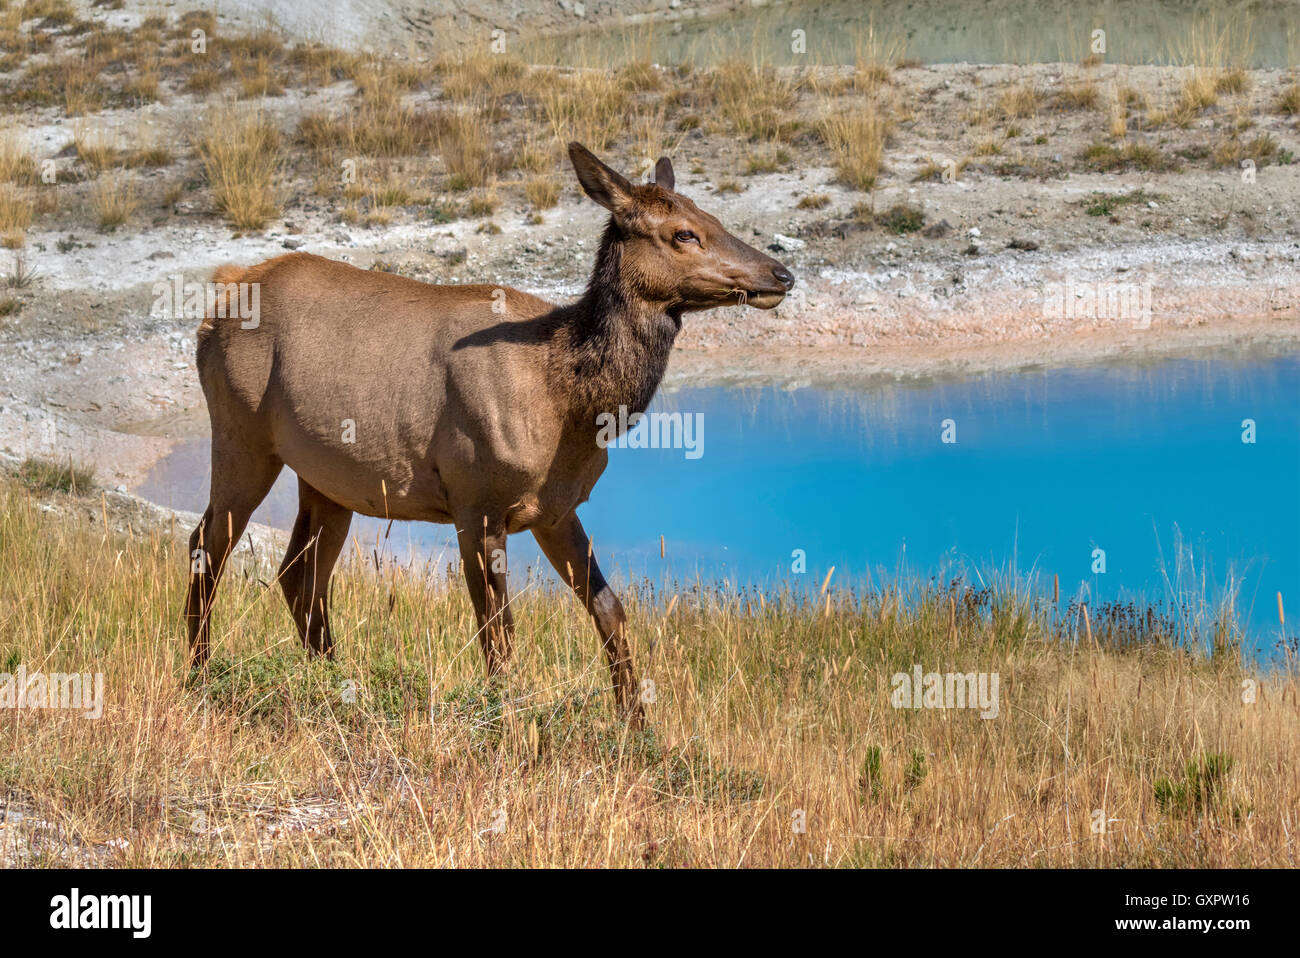 American elk (Cervus canadensis) female grazing near a thermal spring, Yellowstone National Park, Wyoming, USA - Stock Image